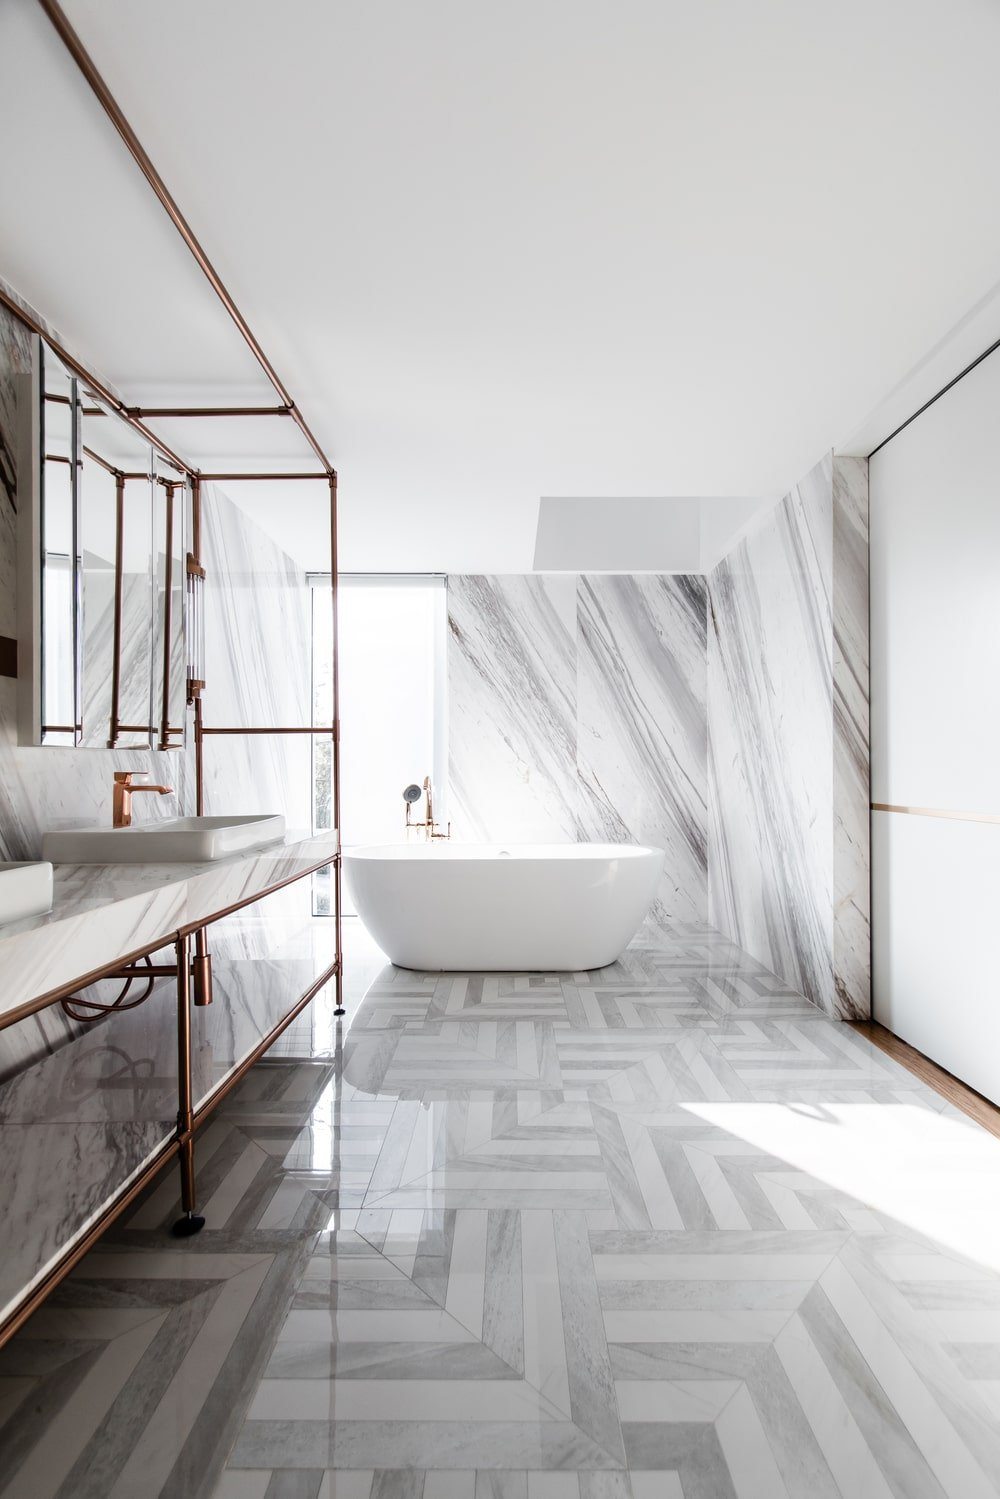 On the side of the large vanity area of the bathroom is the freestanding bathtub on the far side that stands out against the marble wall.